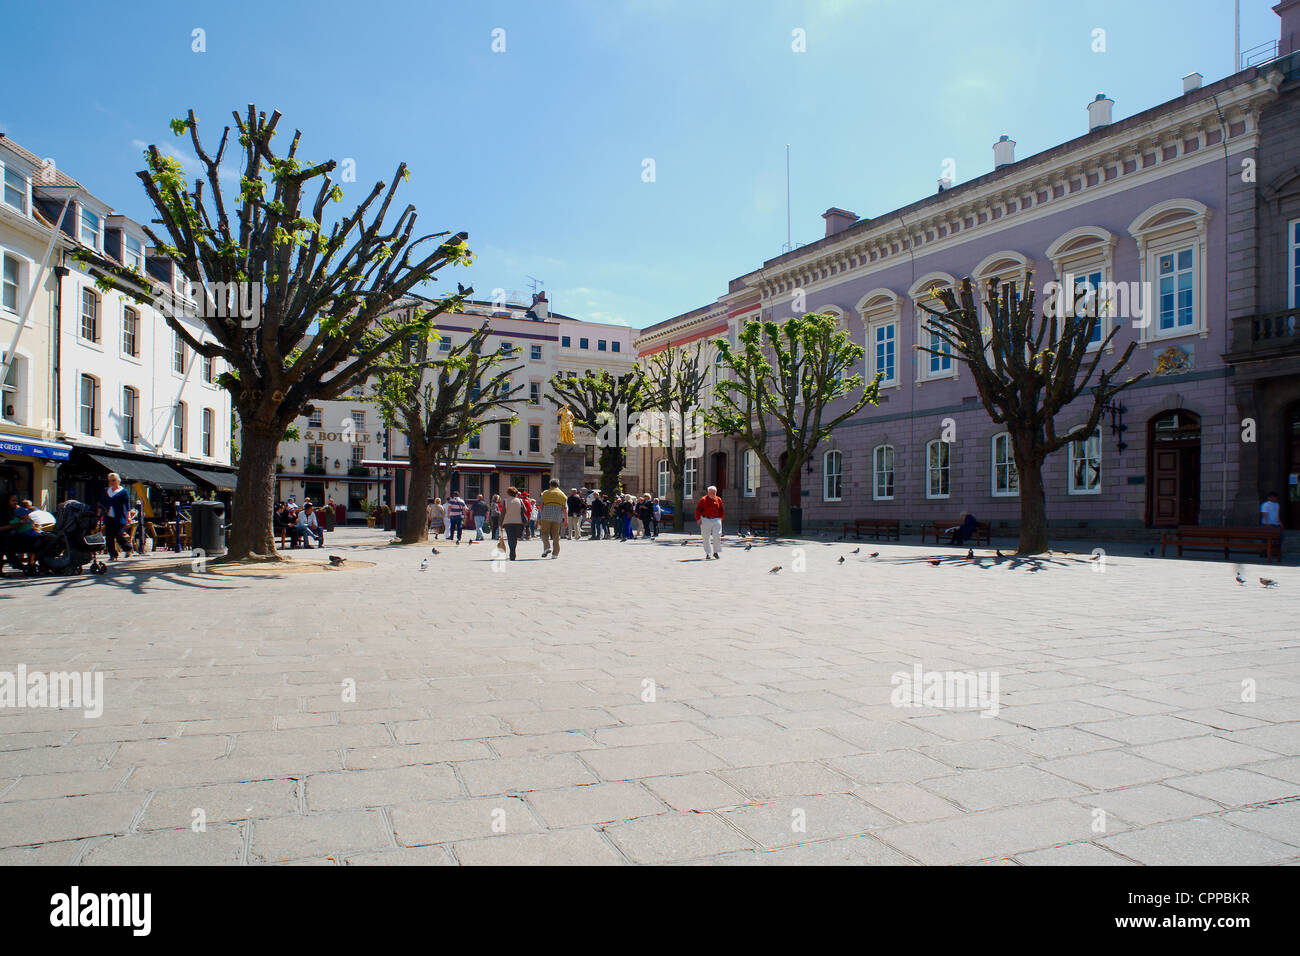 Royal Square, St. Helier, Jersey, Channel Islands - Stock Image